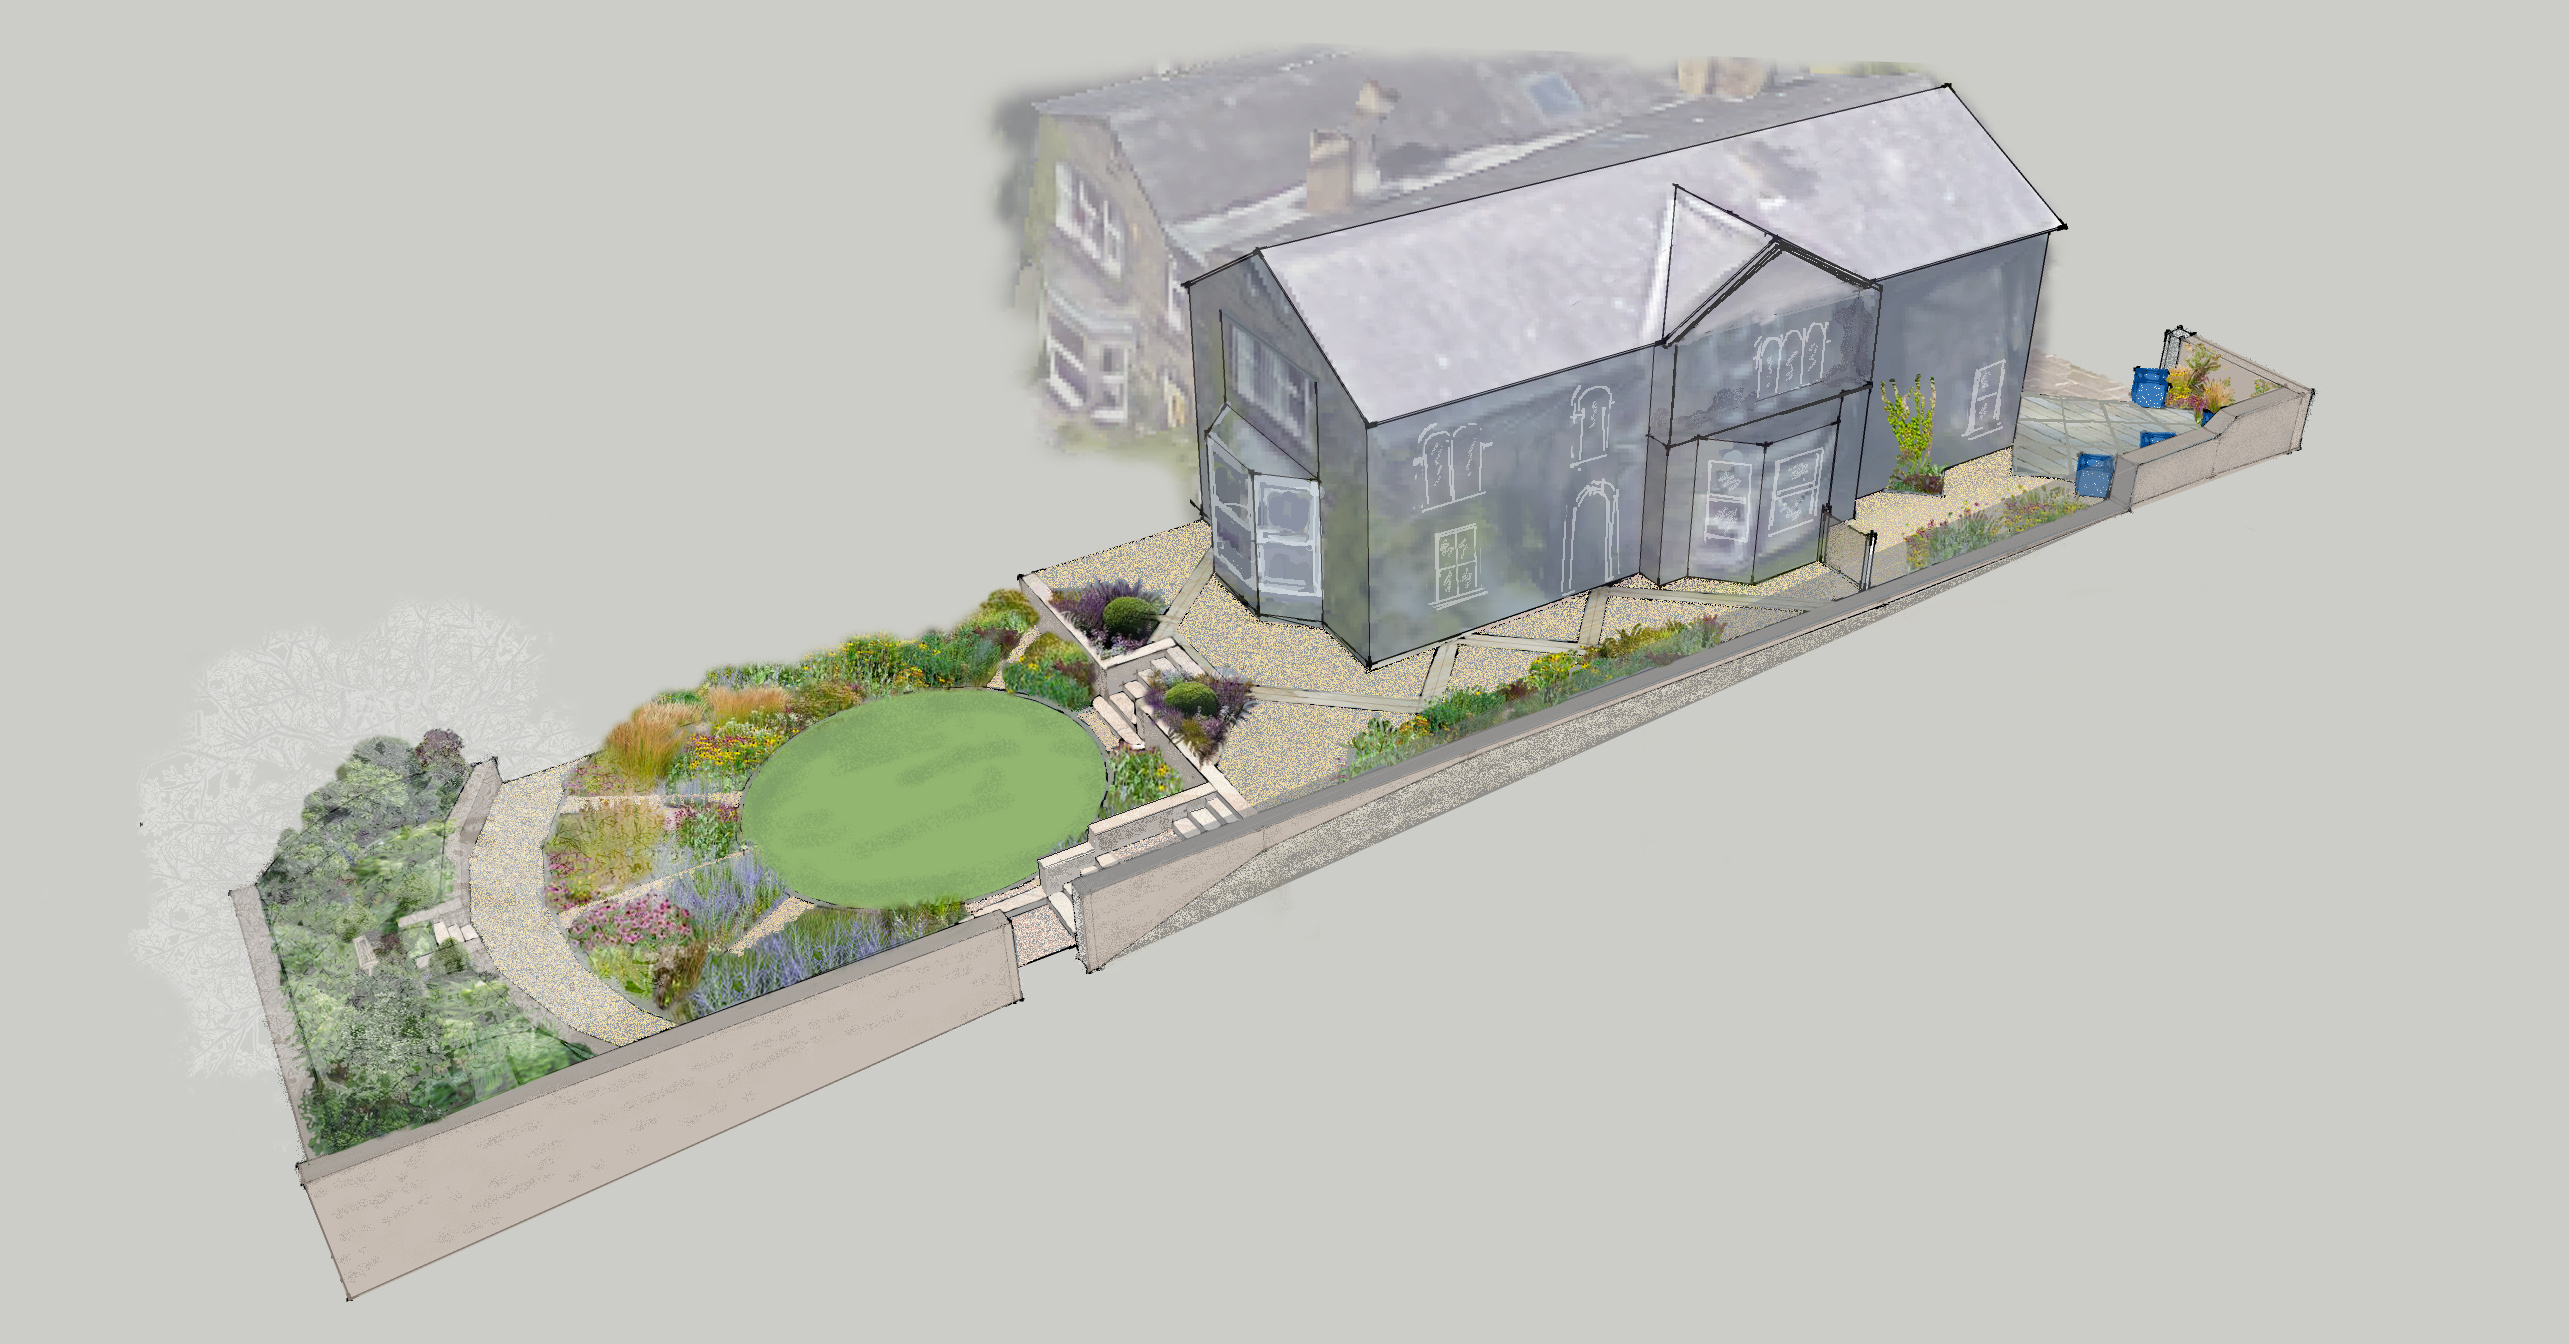 Headingley Garden inspired by Church - Leeds Garden Designer